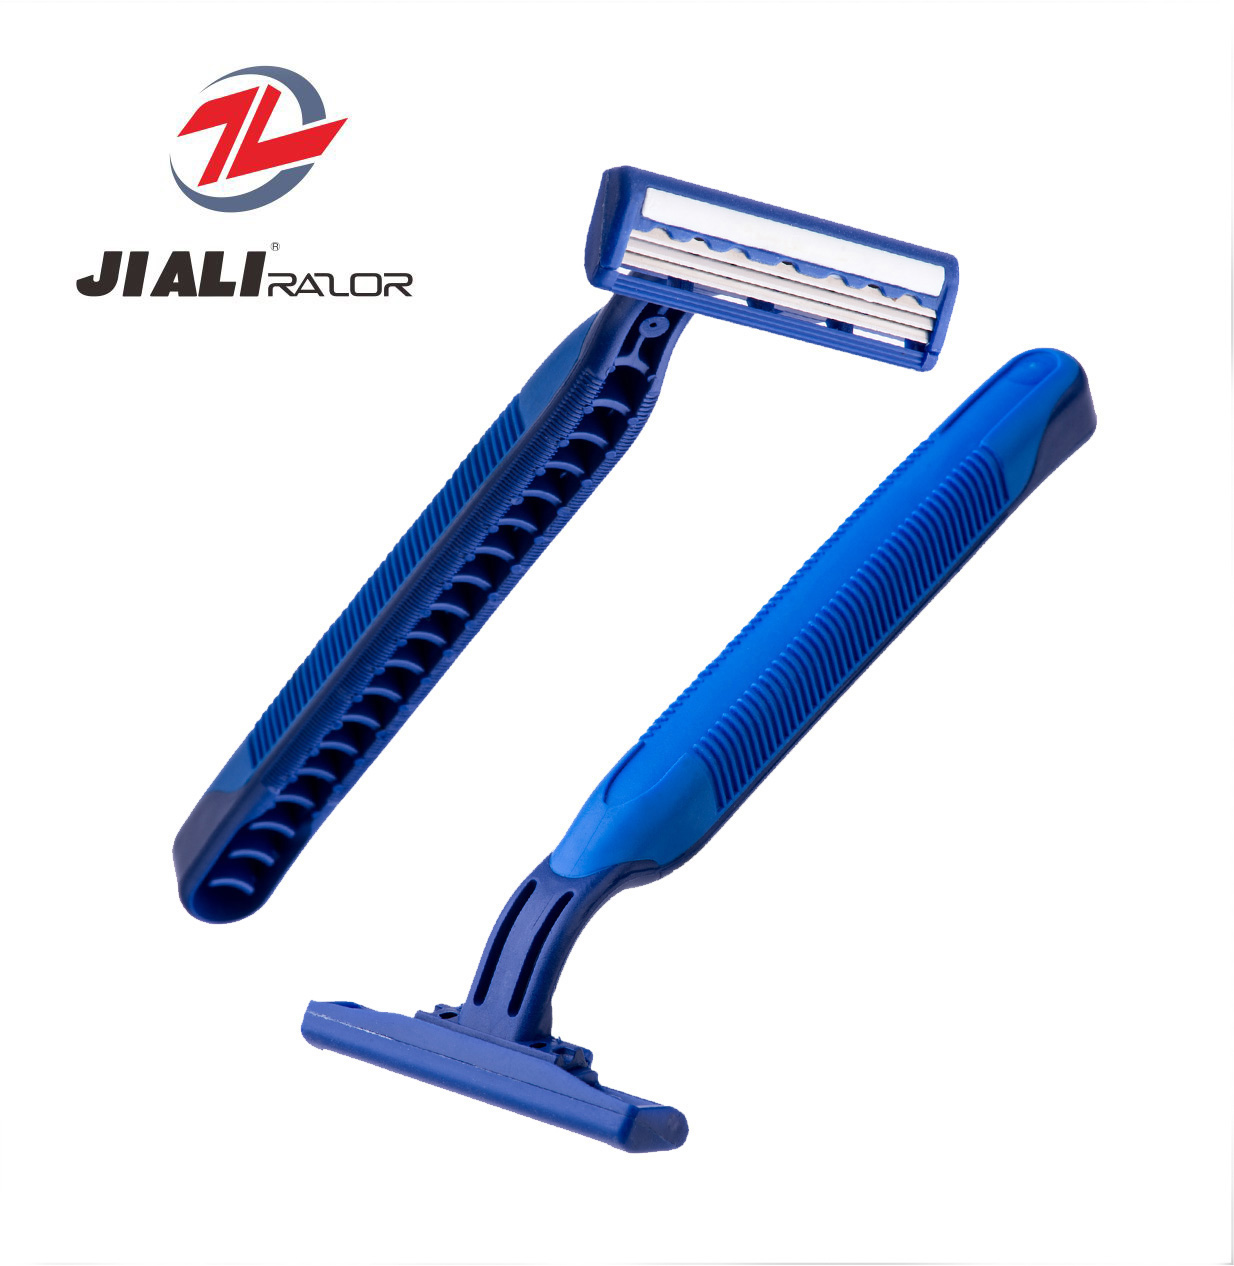 Twin Blades Fixed Head Disposable Razor with Lubricant